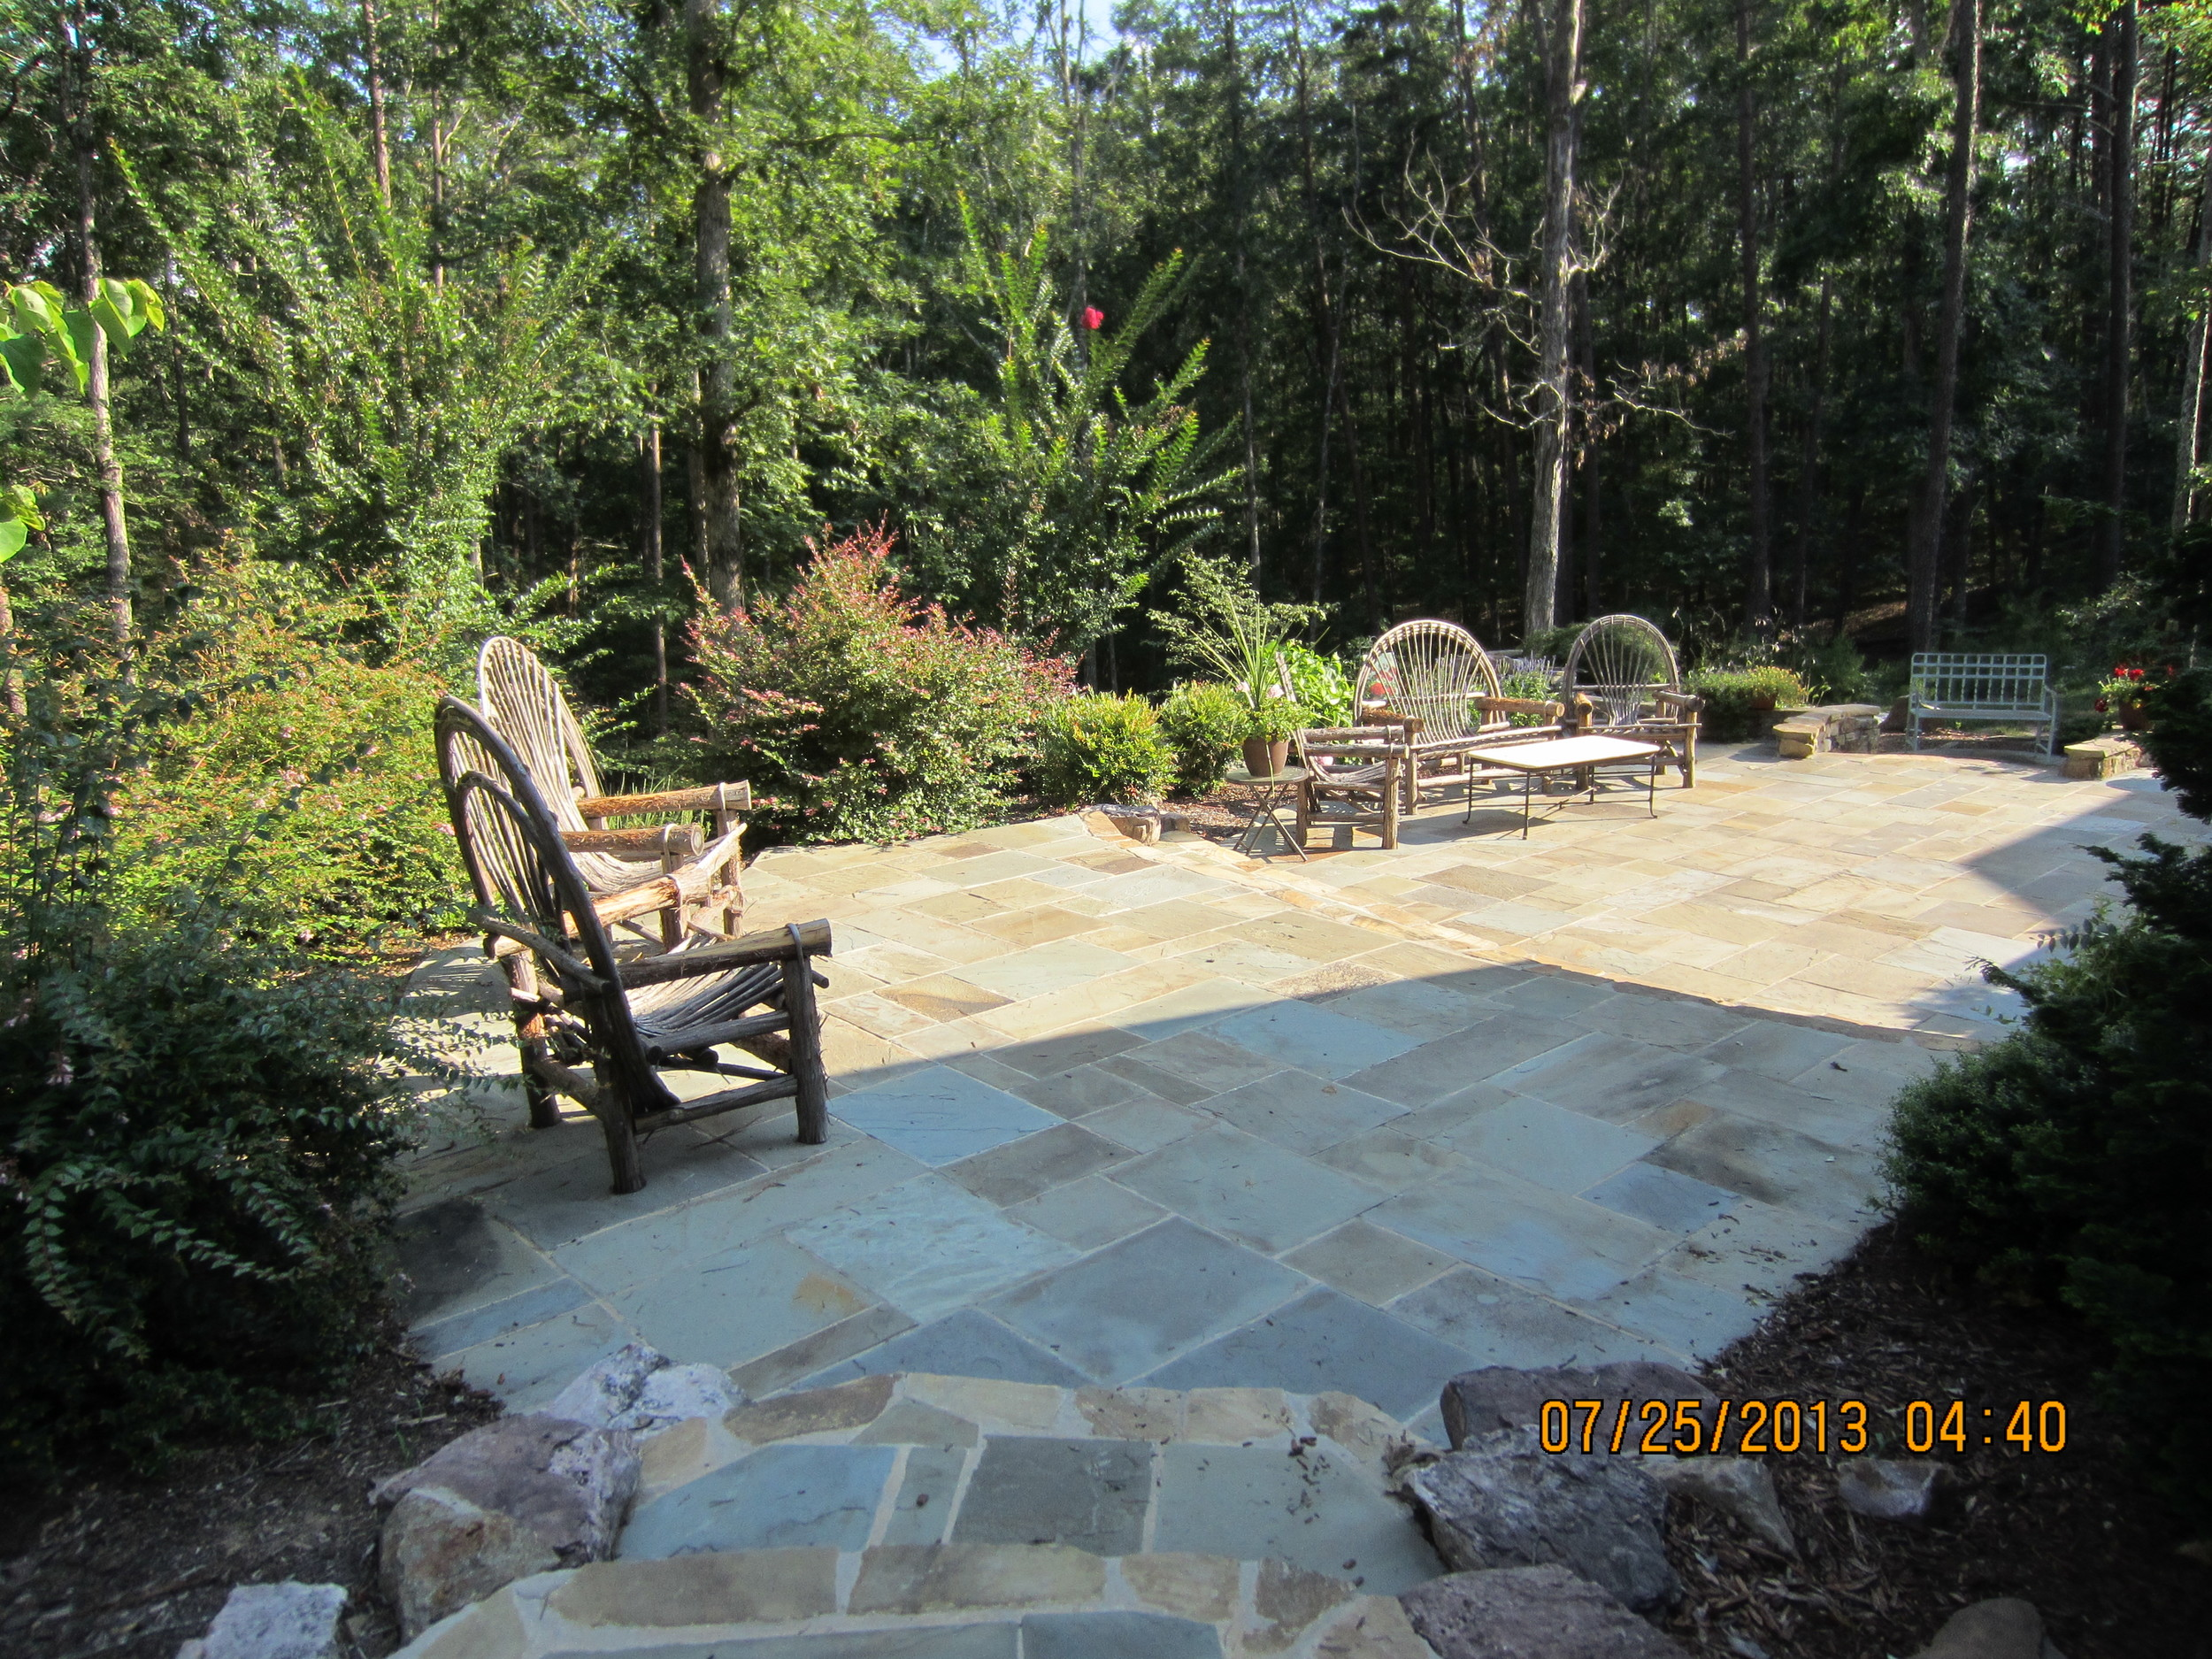 011 Water Garden Designs by Tharpe Landscaping - Outdoor Living.JPG